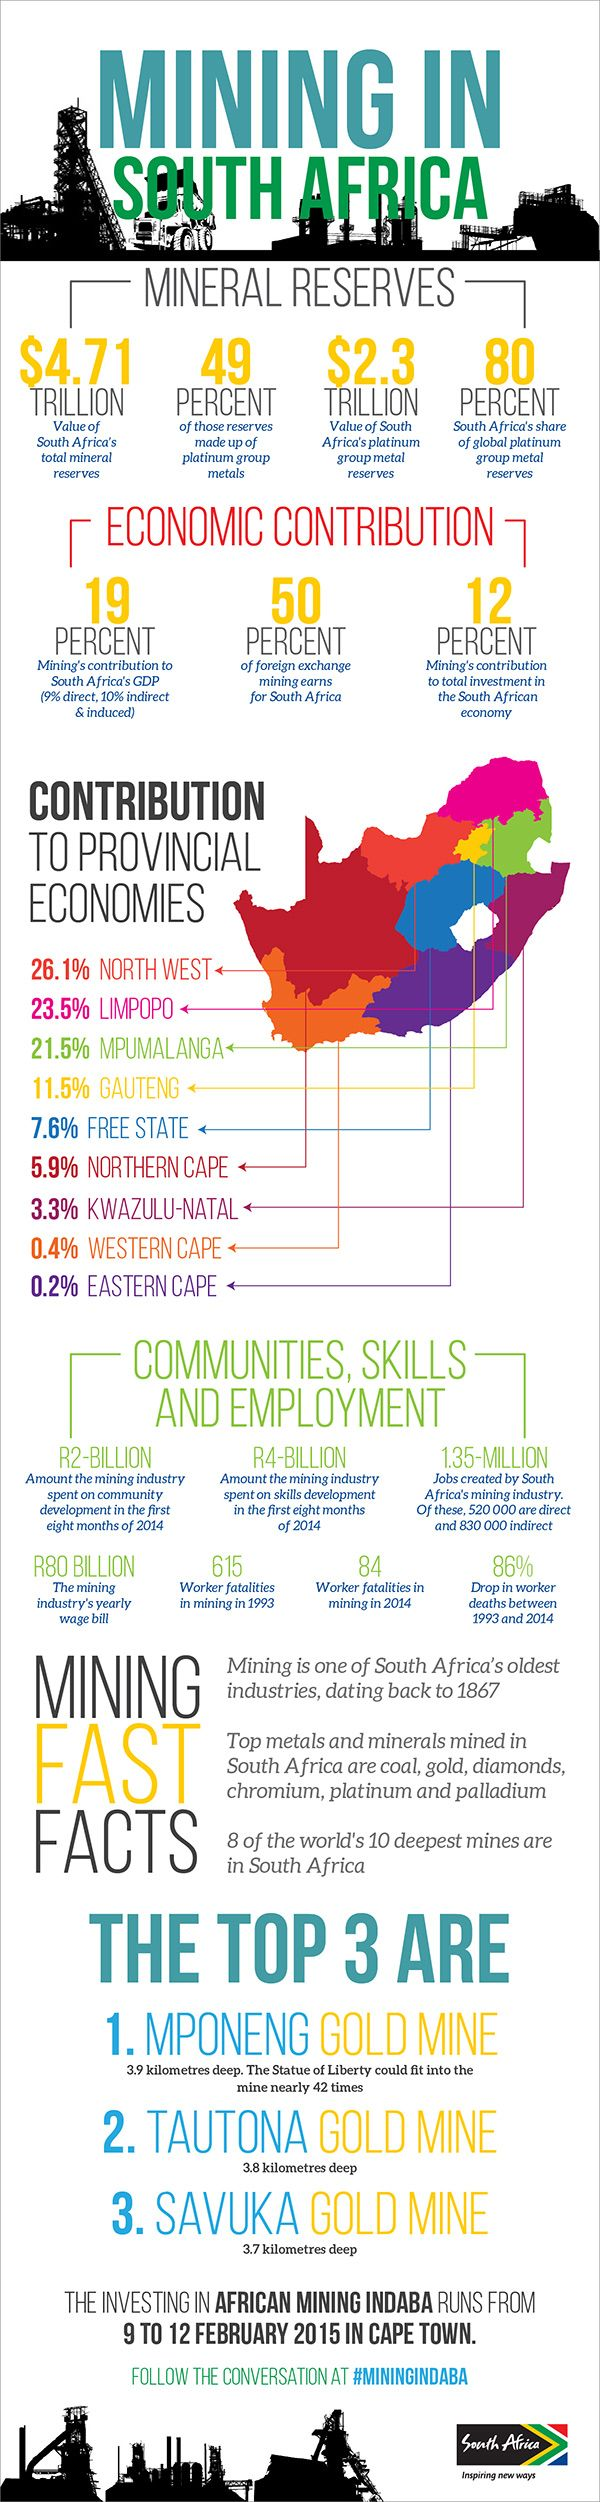 [INFOGRAPHIC] Mining in South Africa Health food, Sports